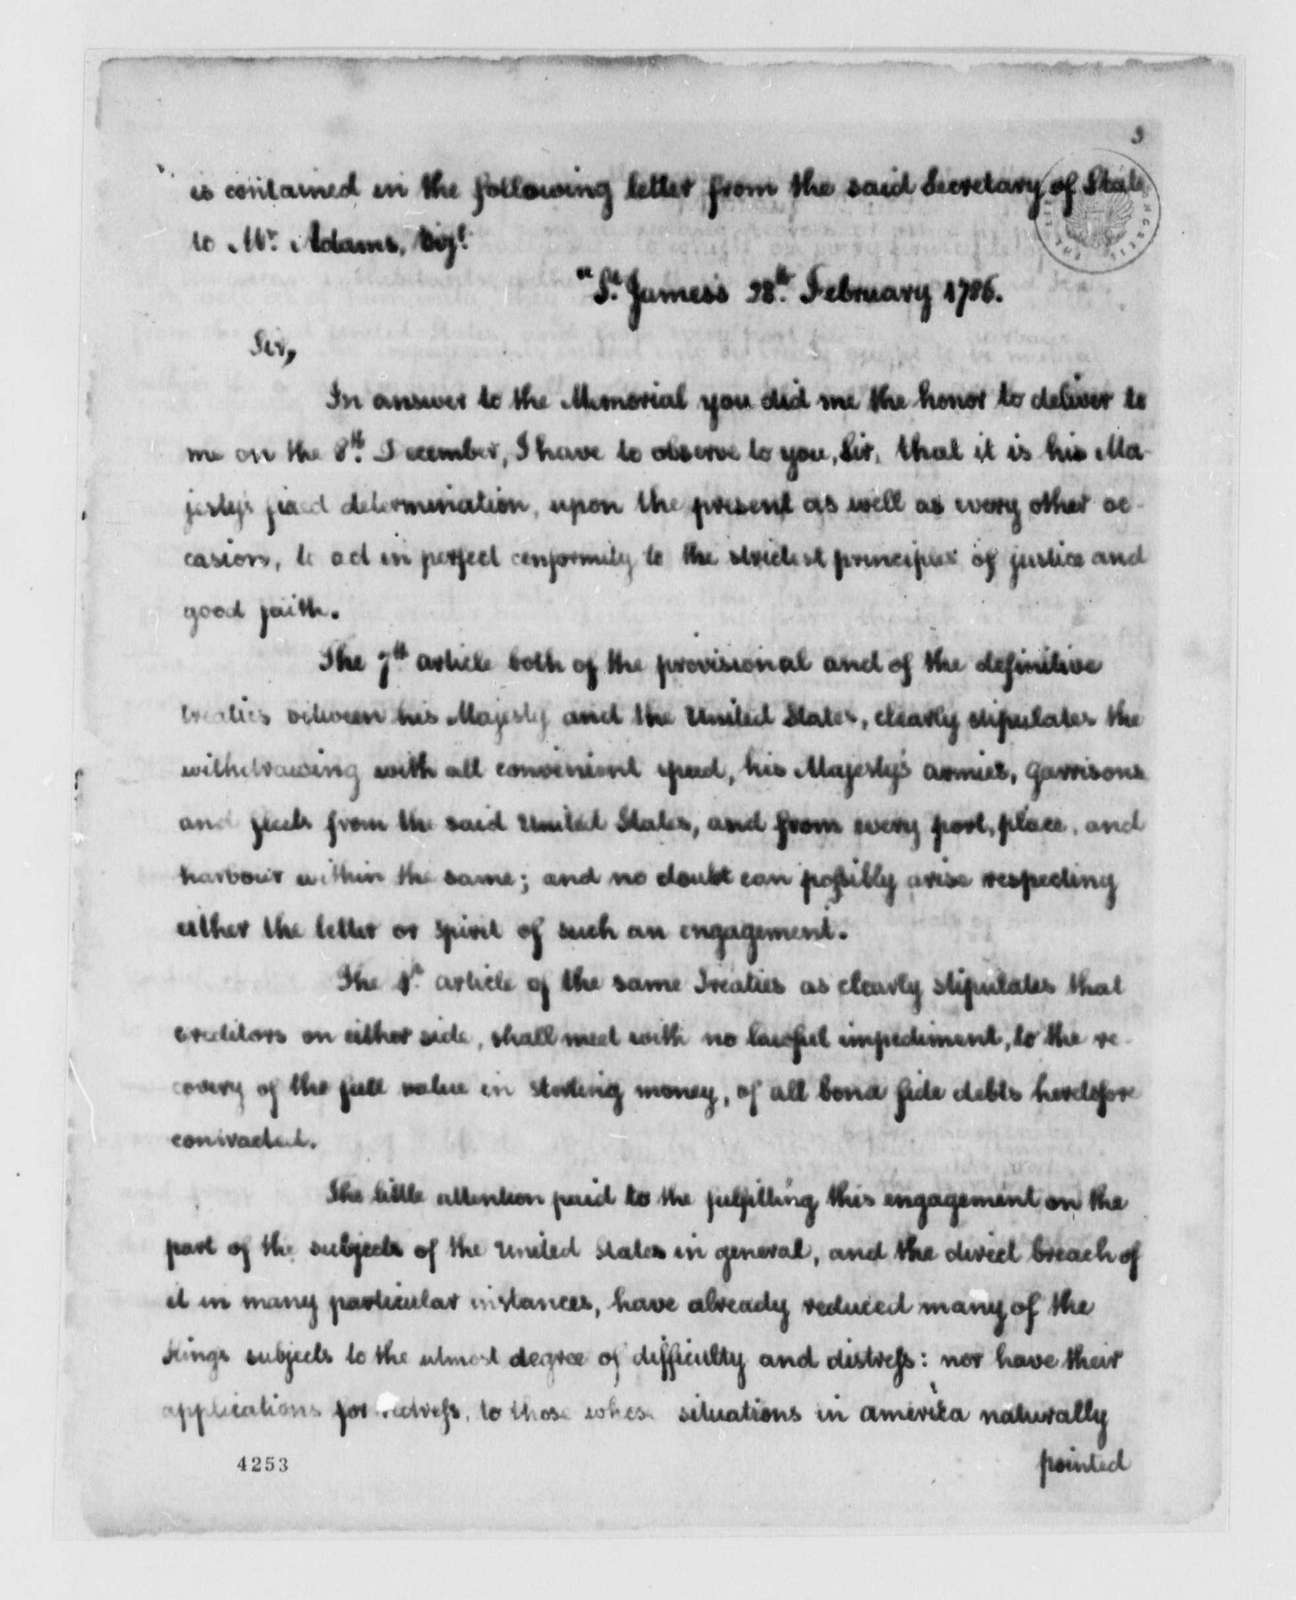 John Jay to United States Congress, October 13, 1786, Report on Delay by British Troops in Withdrawing from the United States